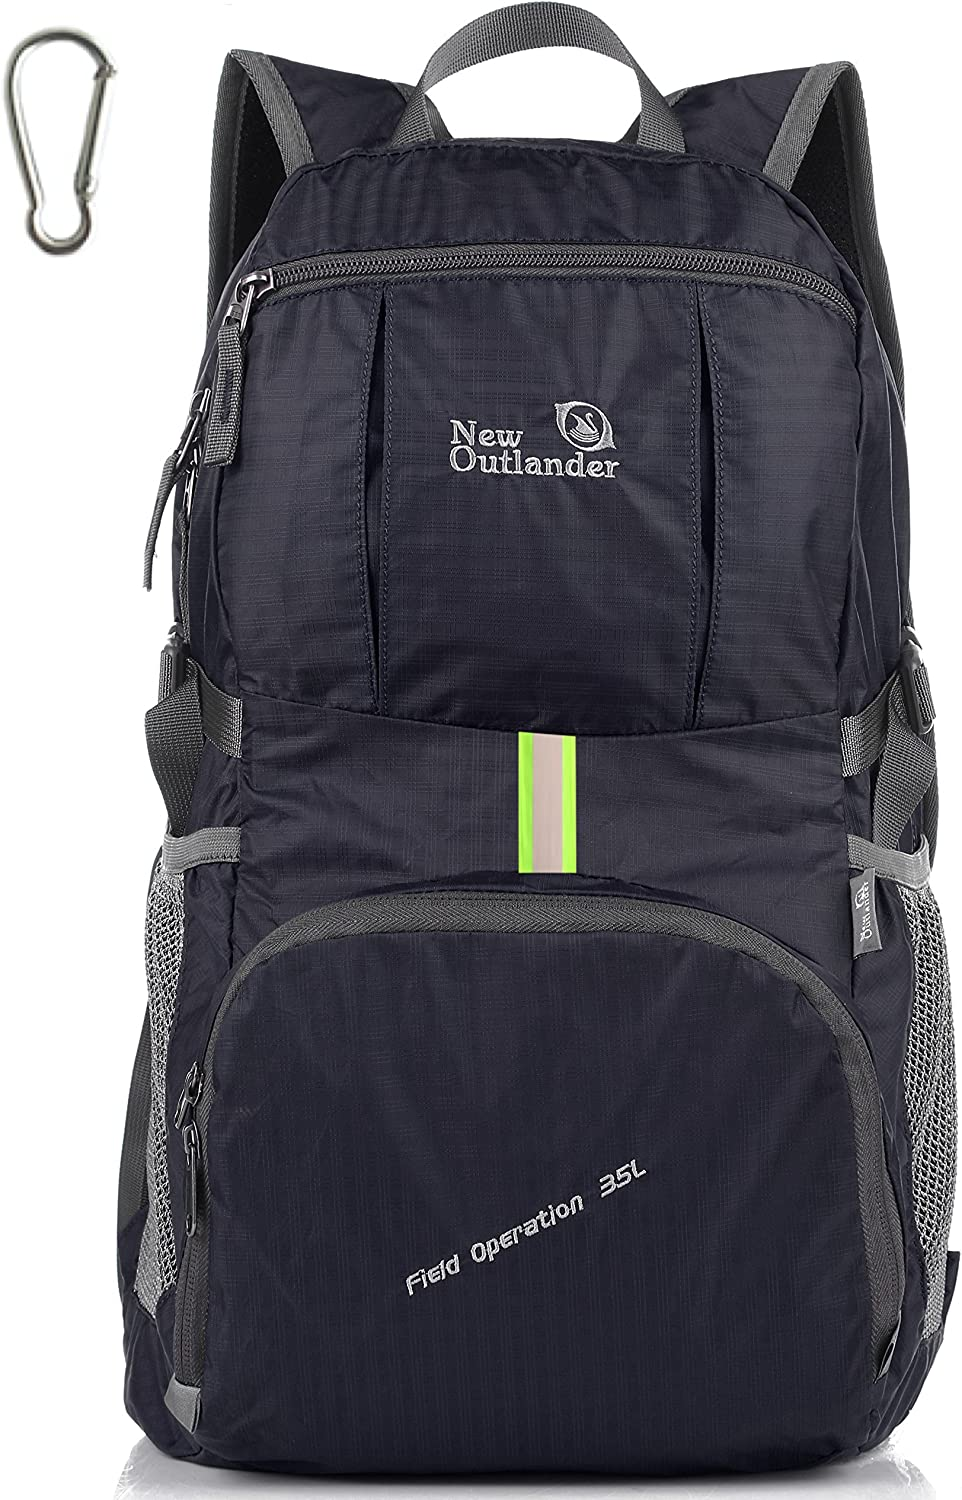 Outlander Packable Lightweight Travel Hiking Backpack Daypack